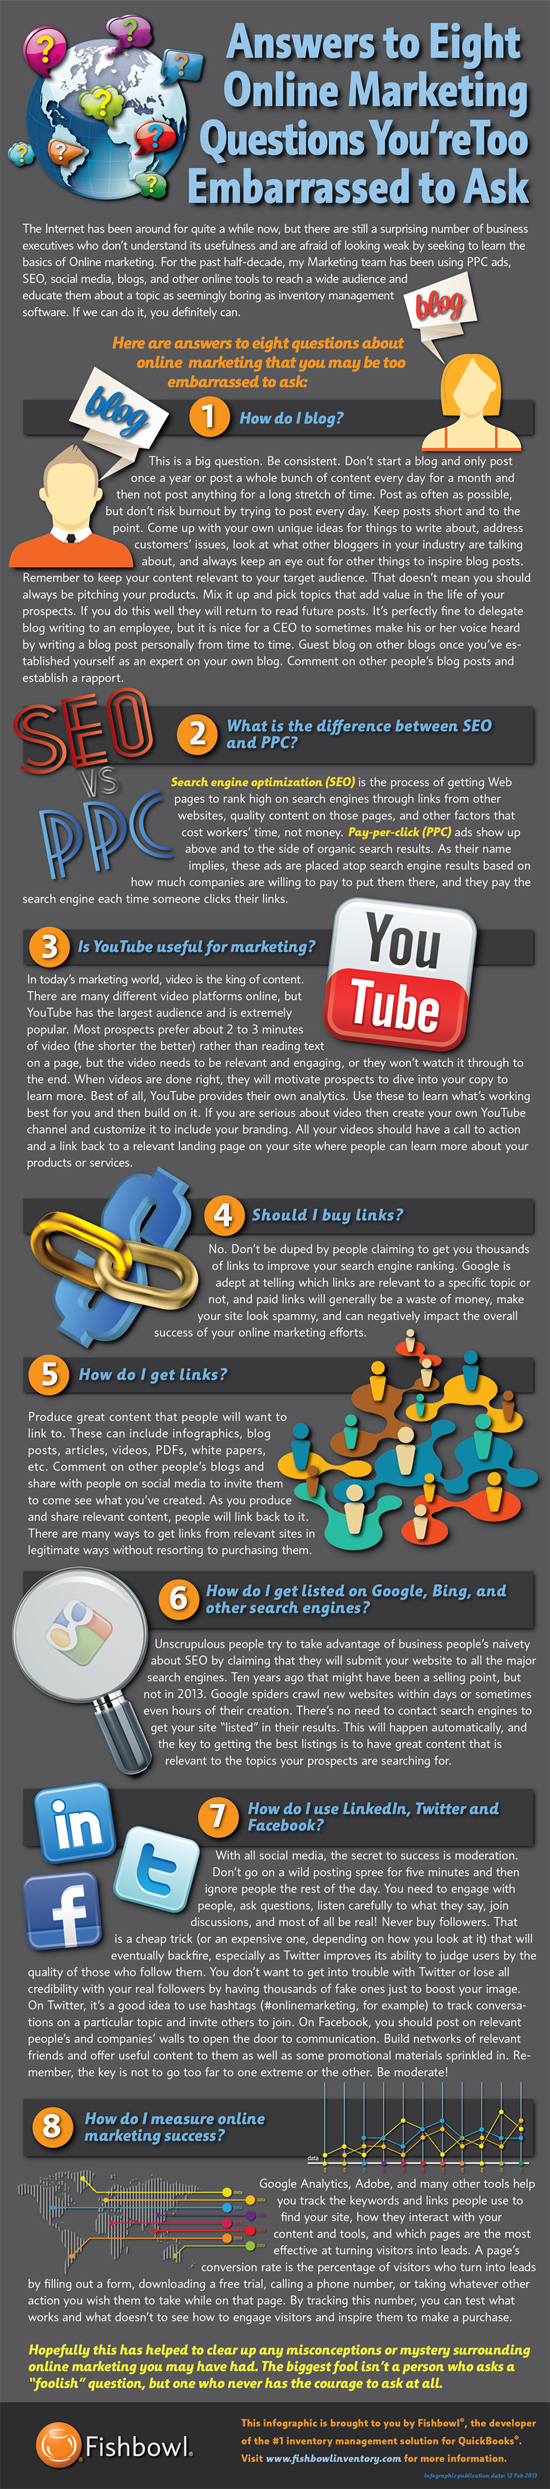 Infographic Of Online Marketing Questions Answered